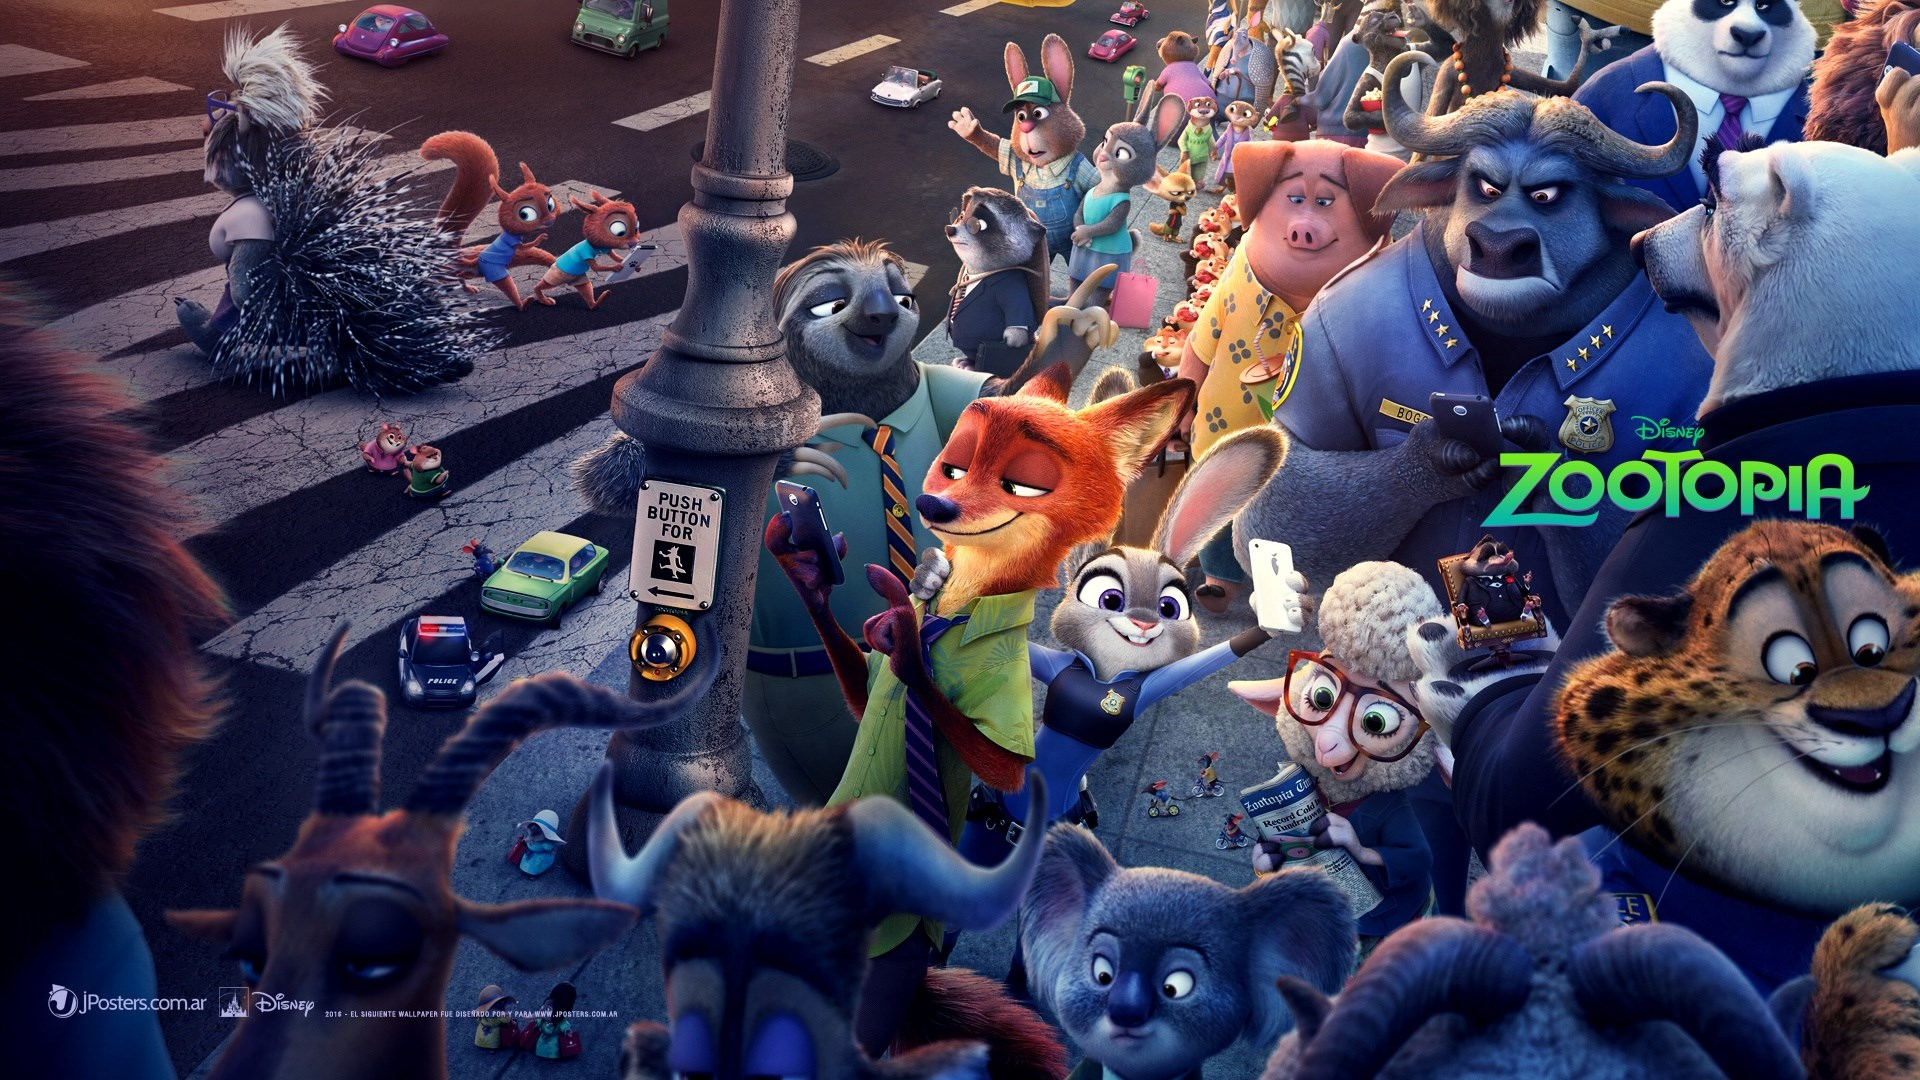 1920x1080-px-zootopia-desktop-by-Mosiah-Bishop-wallpaper-wp380895